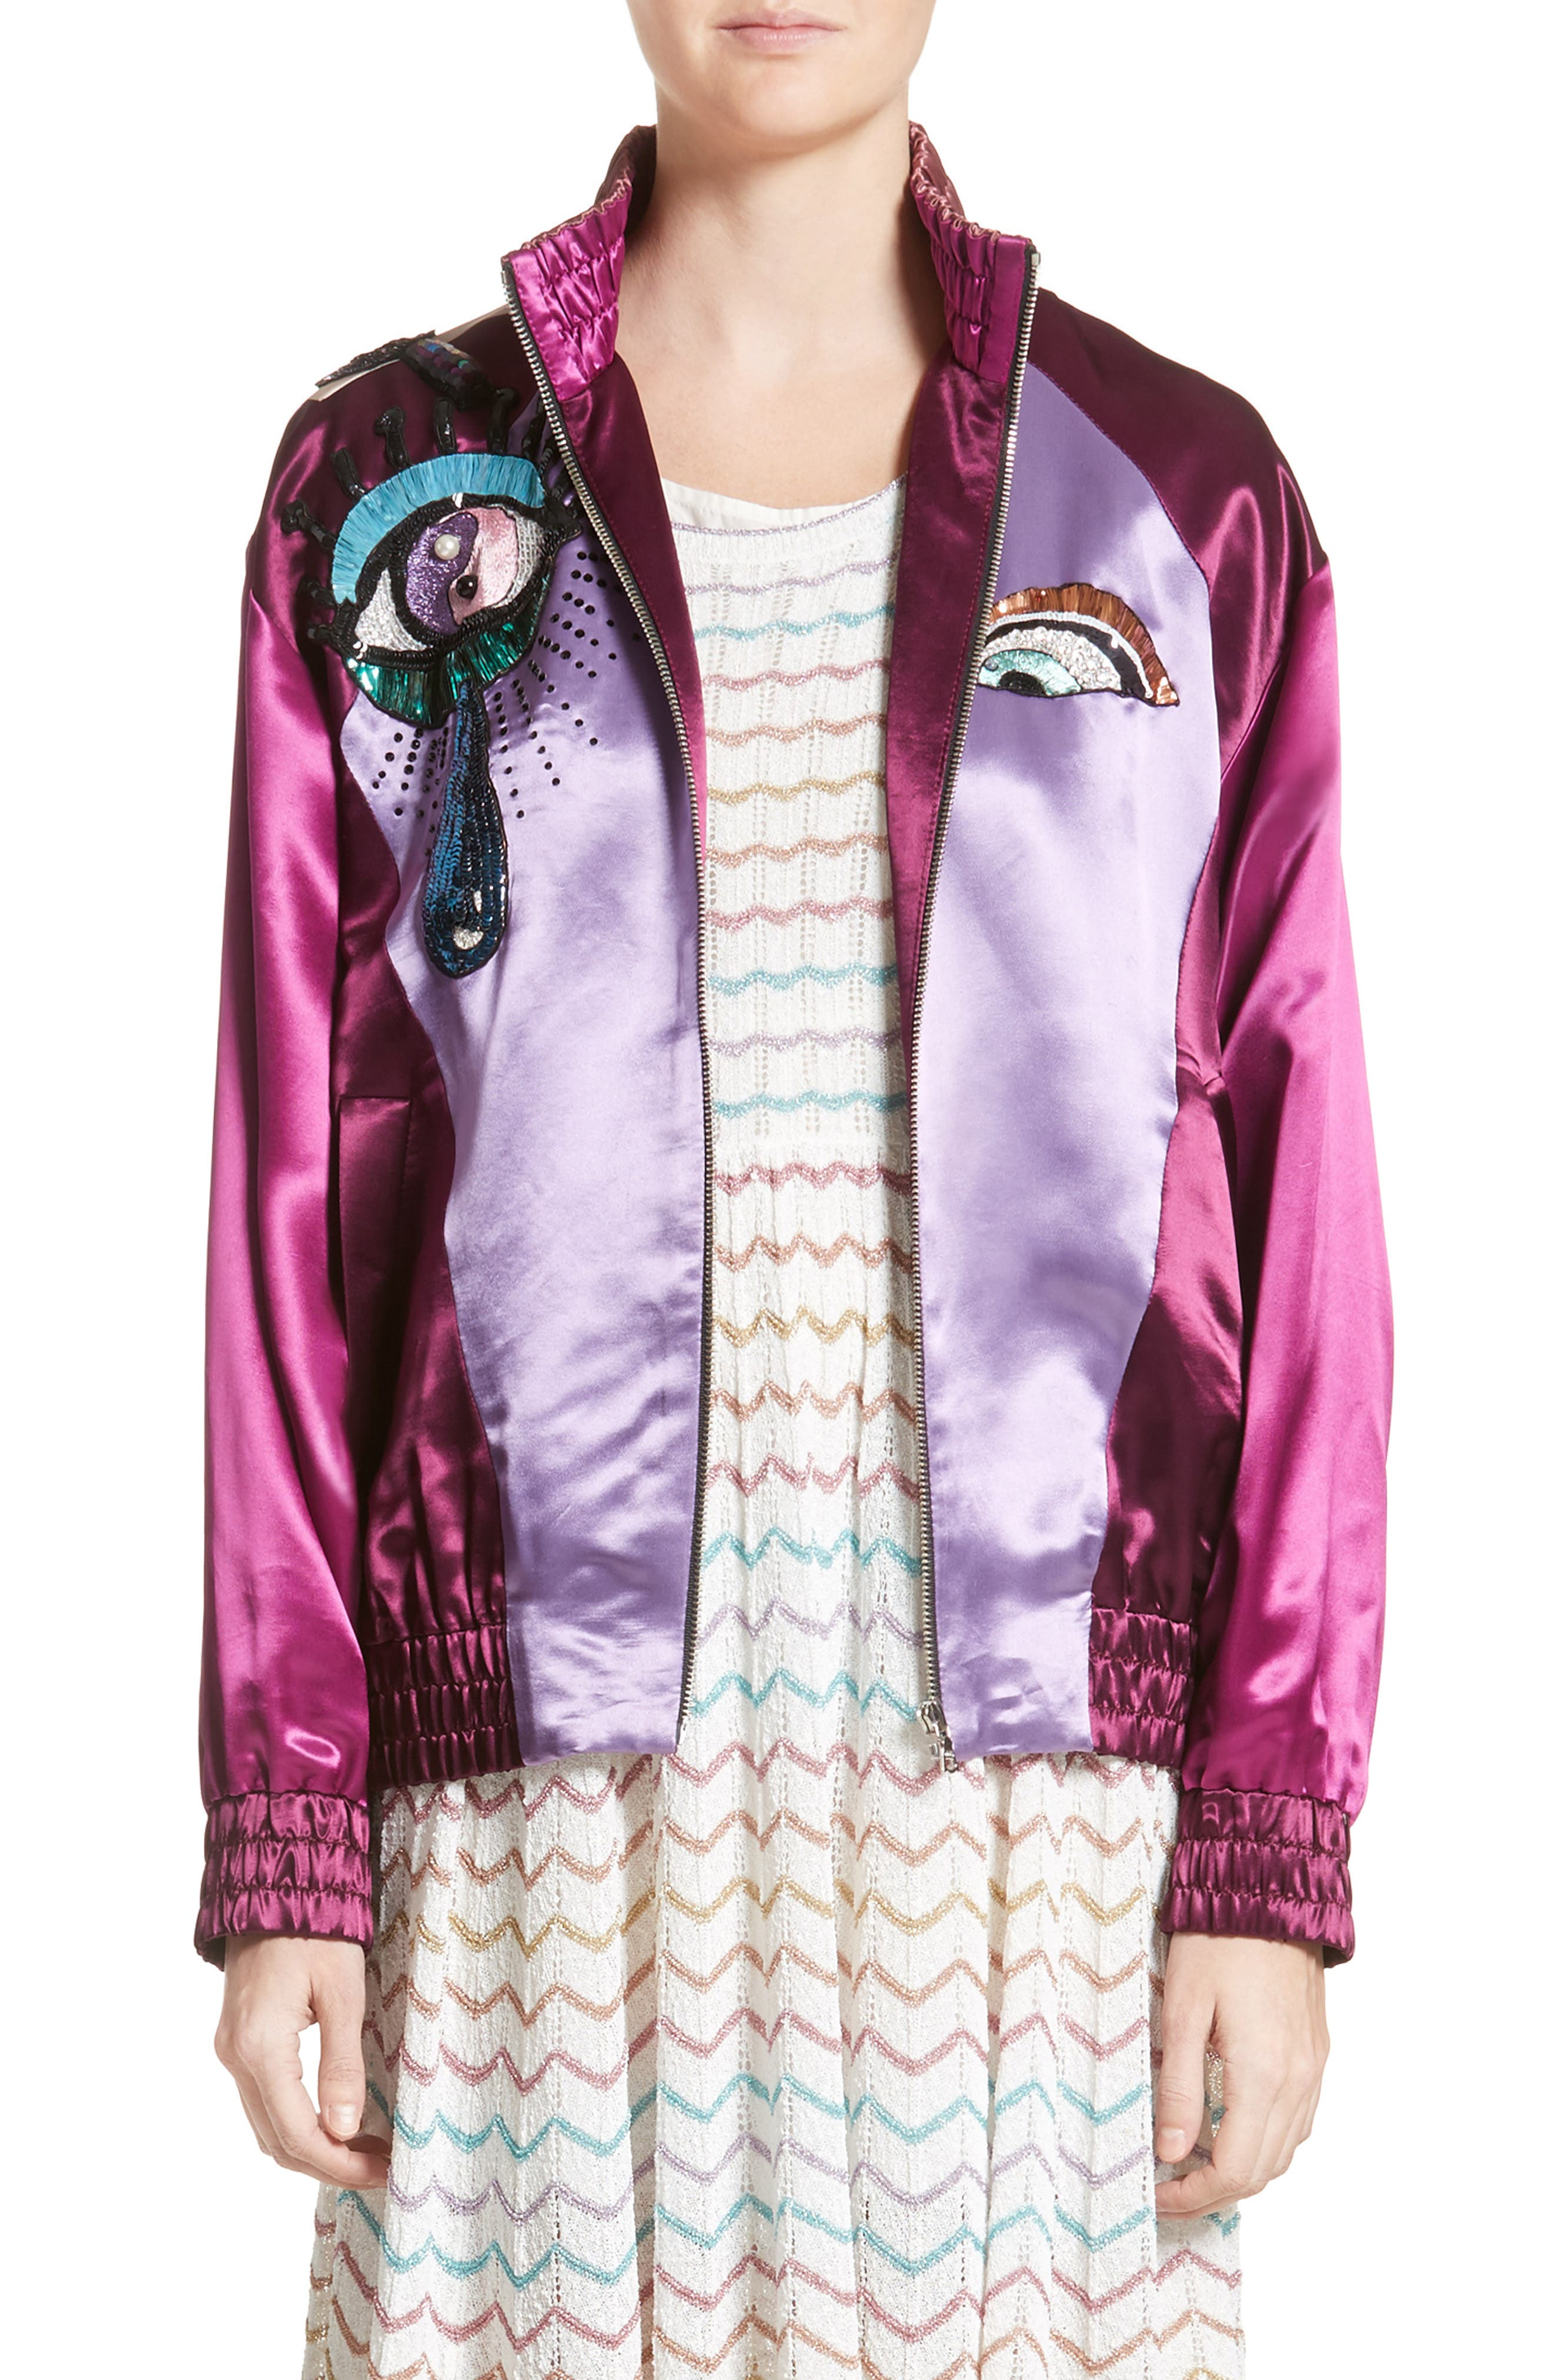 Alternate Image 1 Selected - MARC JACOBS Appliqué Satin Bomber